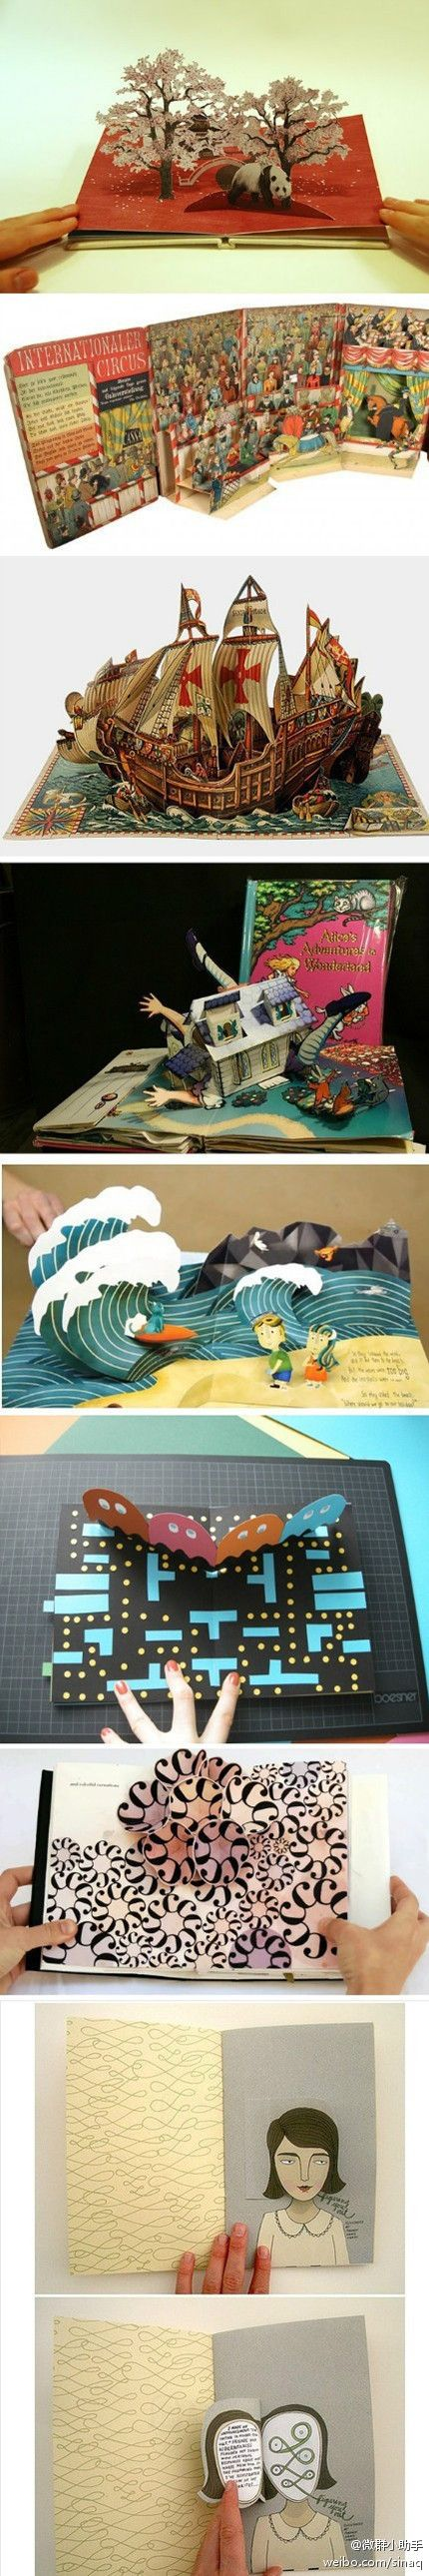 Pop up books                                                                                                                                                      More